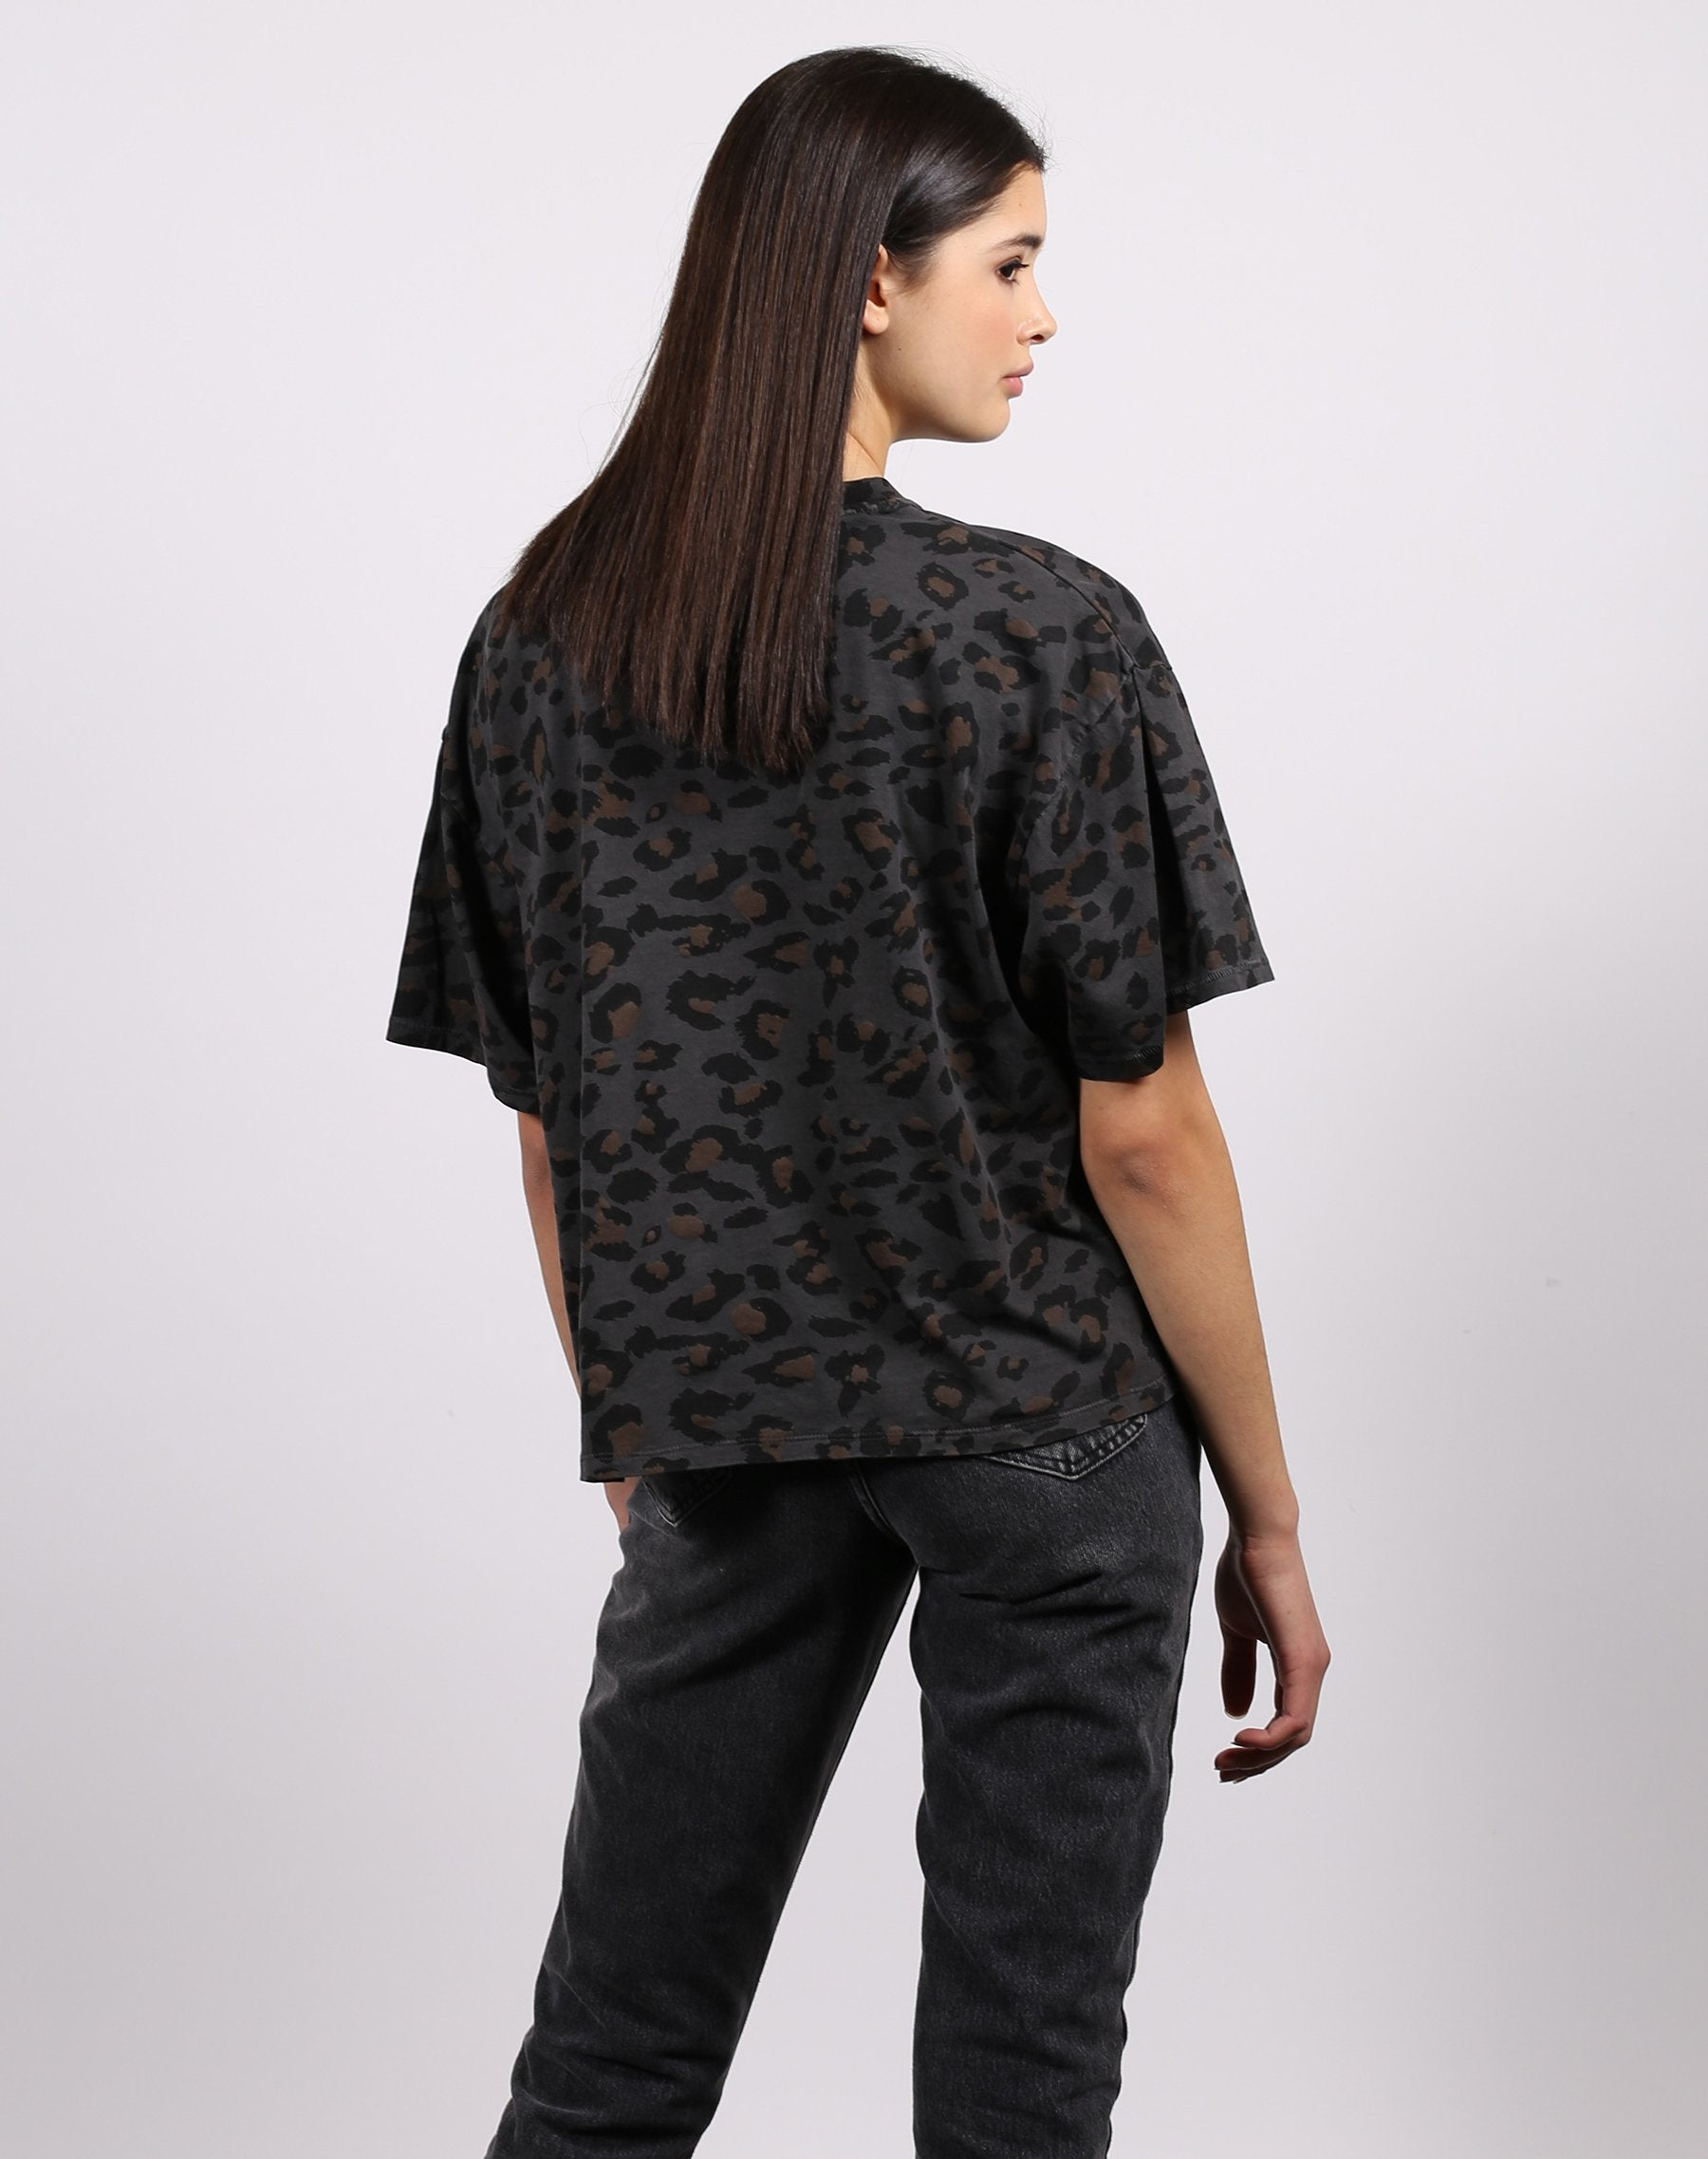 This is a photo of the back of the leopard 1981 slate grey boxy tee from brunette the label